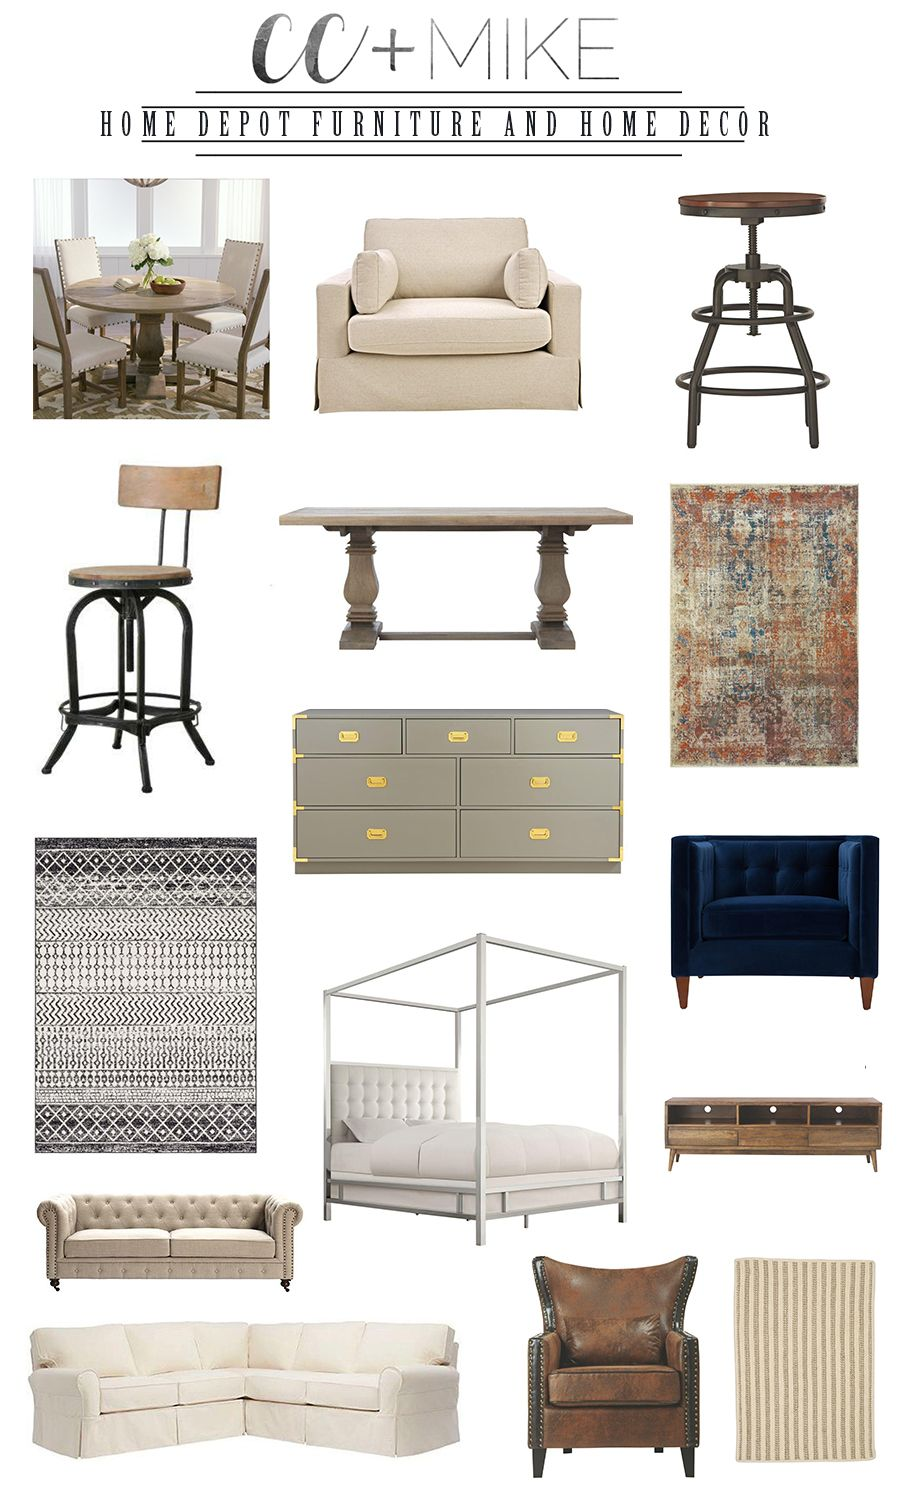 Holiday Decor Favorites From Home Depot Cc And Mike Design Blog Home Home Decor Decor